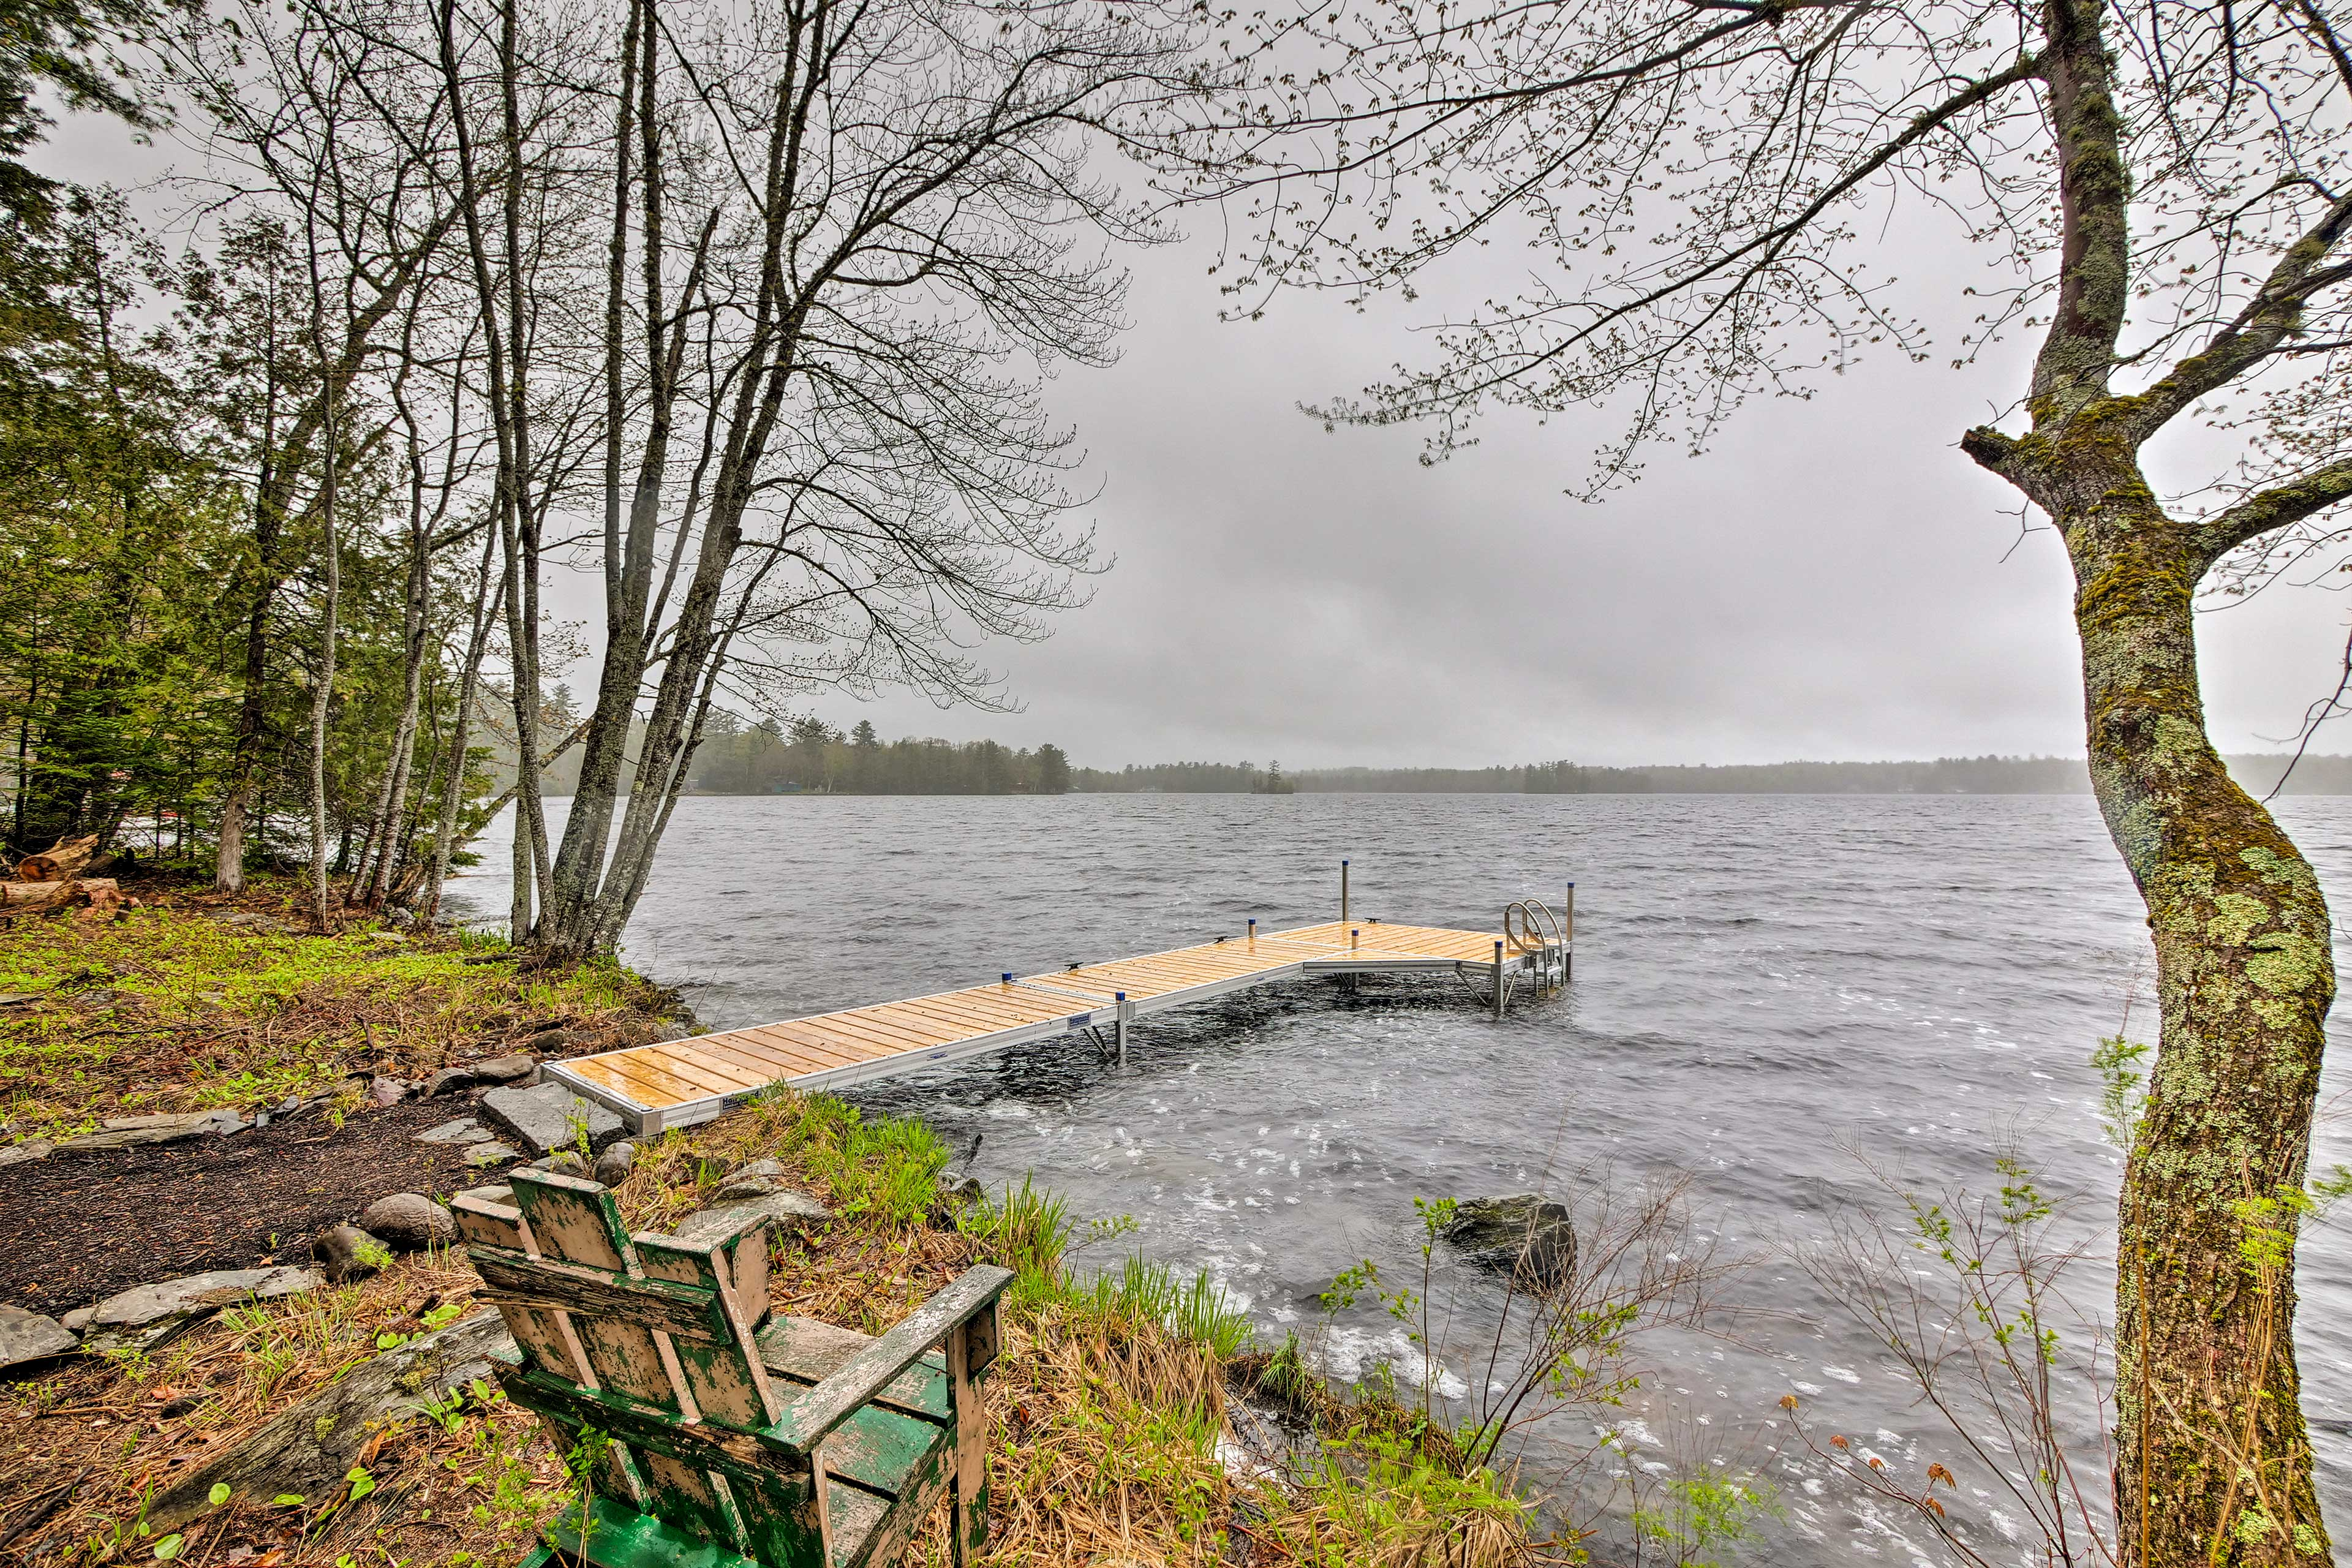 The new dock is the perfect place to cast a line or go swimming!